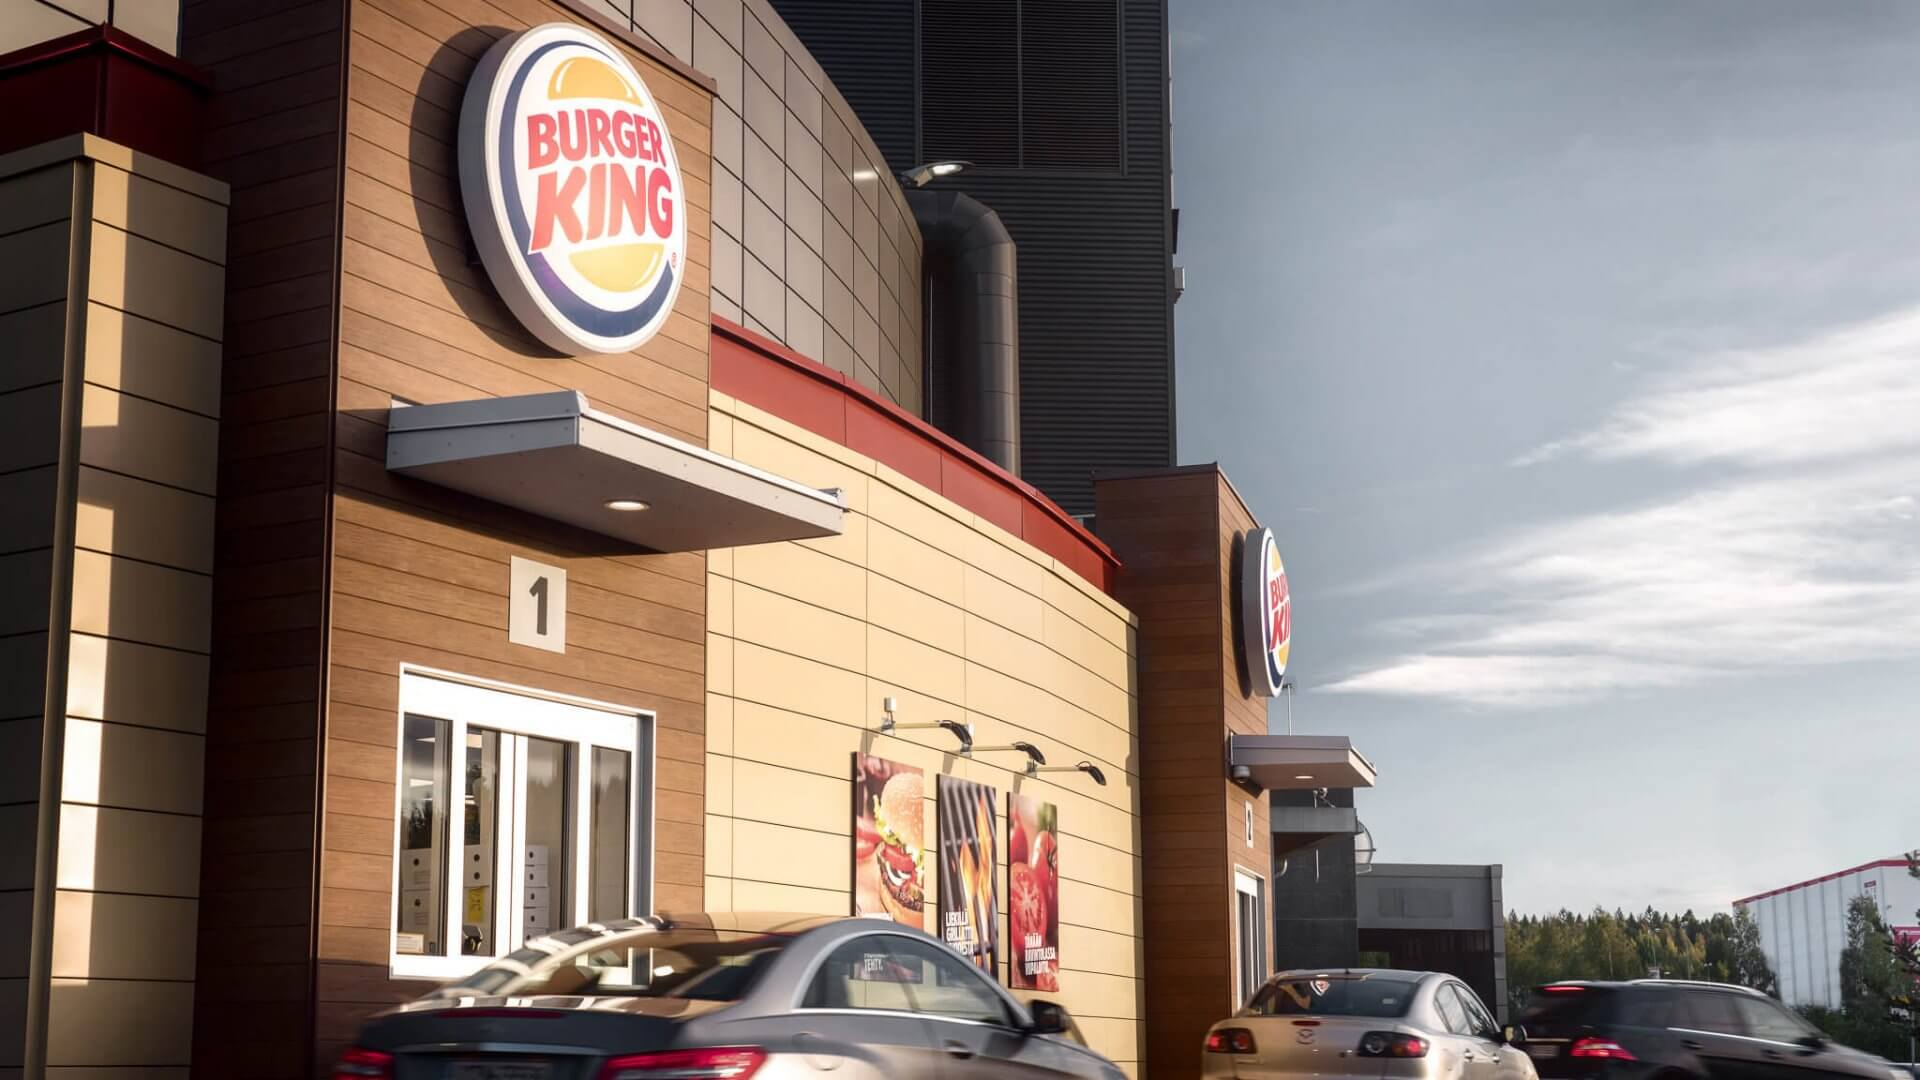 Burger King, Veska 4